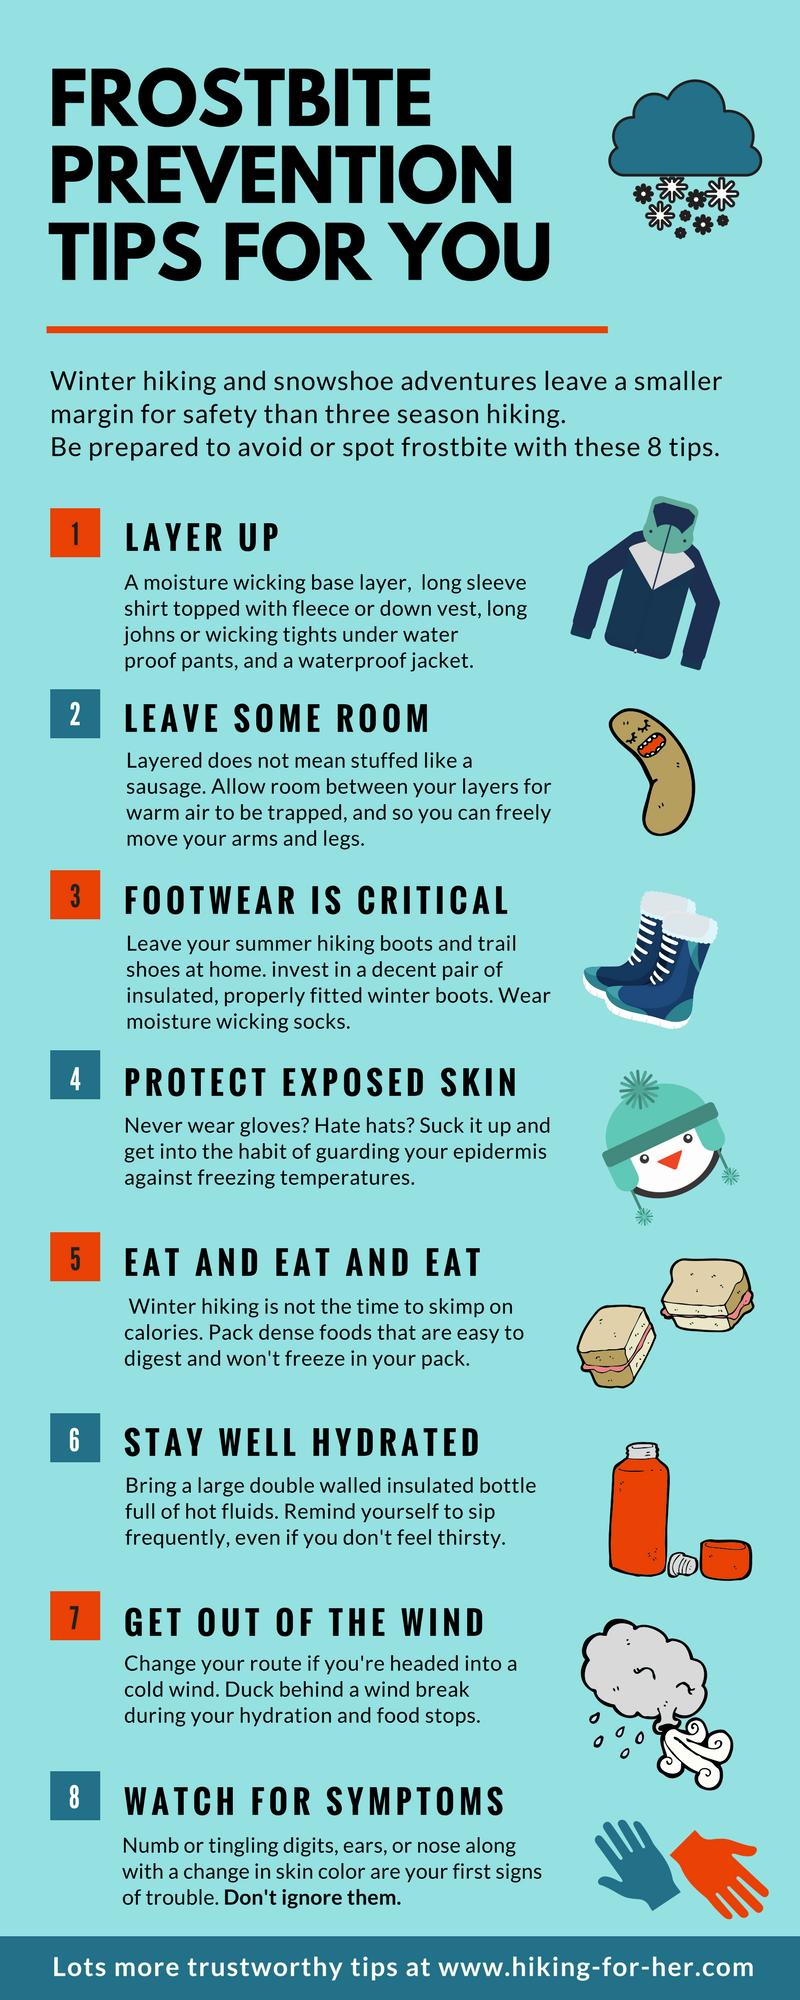 Frostbite and hikers aren't a good match. This infographic gives you tips to keep yourself safe on a cold weather hike. #frostbiteprevention #winterhiking #hiking #backpacking #outdoorsafety